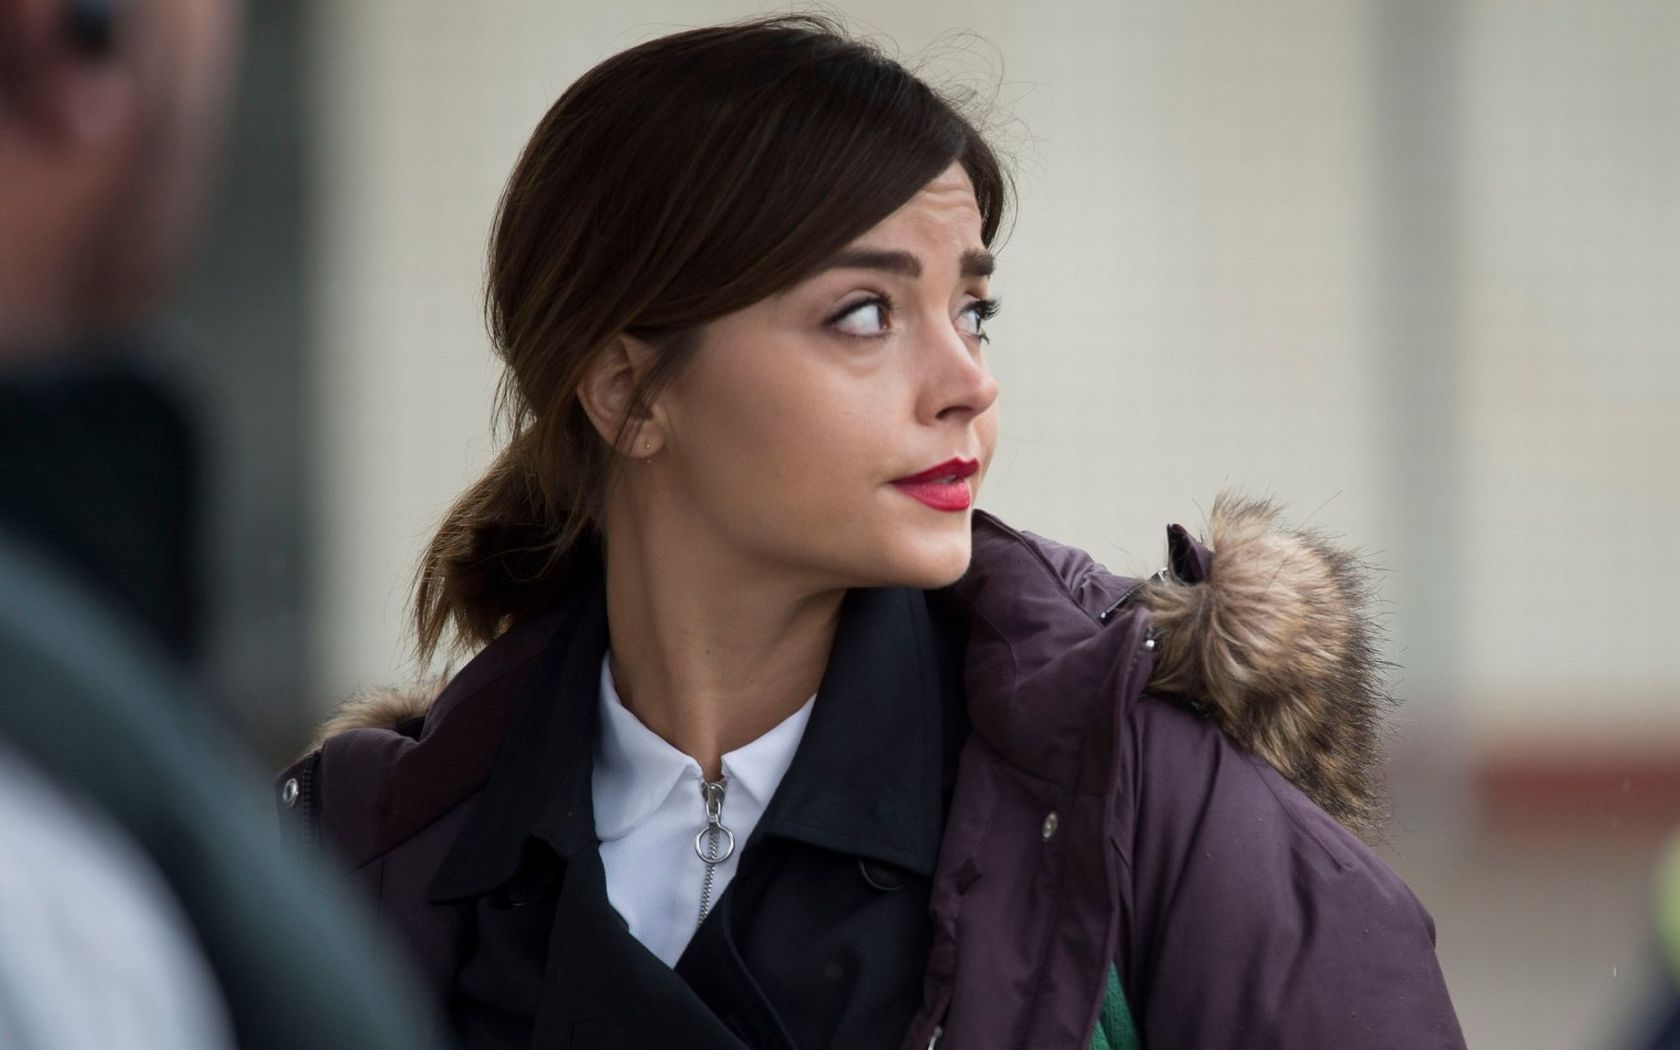 Jenna Coleman from Doctor Who for 1680 x 1050 widescreen resolution